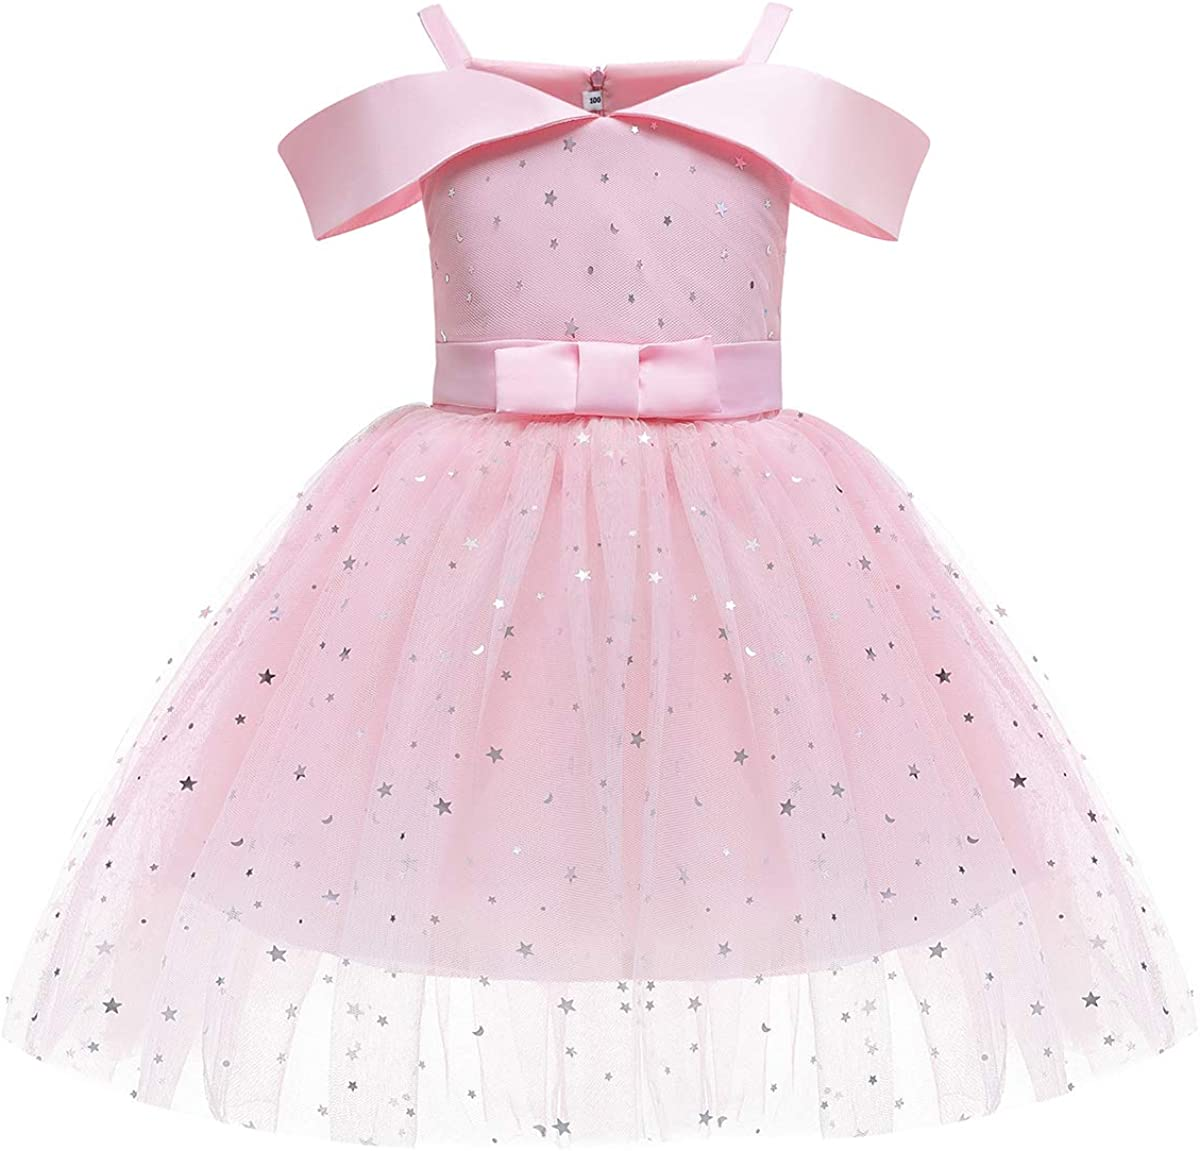 YOOJIA Kids Girls Off Shoulder Special Occasion Dresses Princess Birthday Party Dress Bridesmaid Dresses Pageant Gown